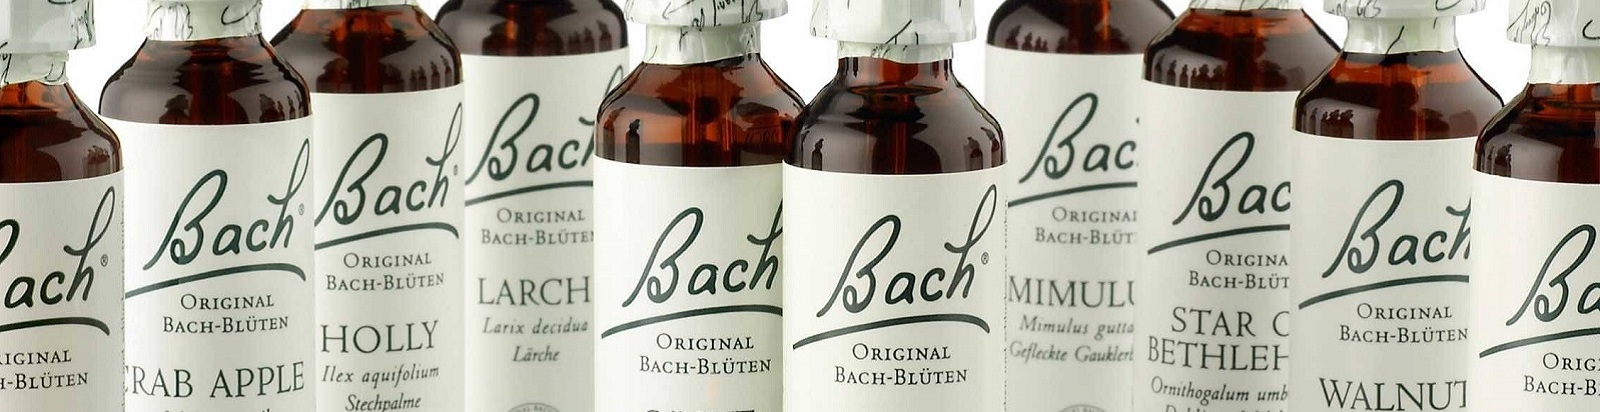 Original Bachblütentherapie